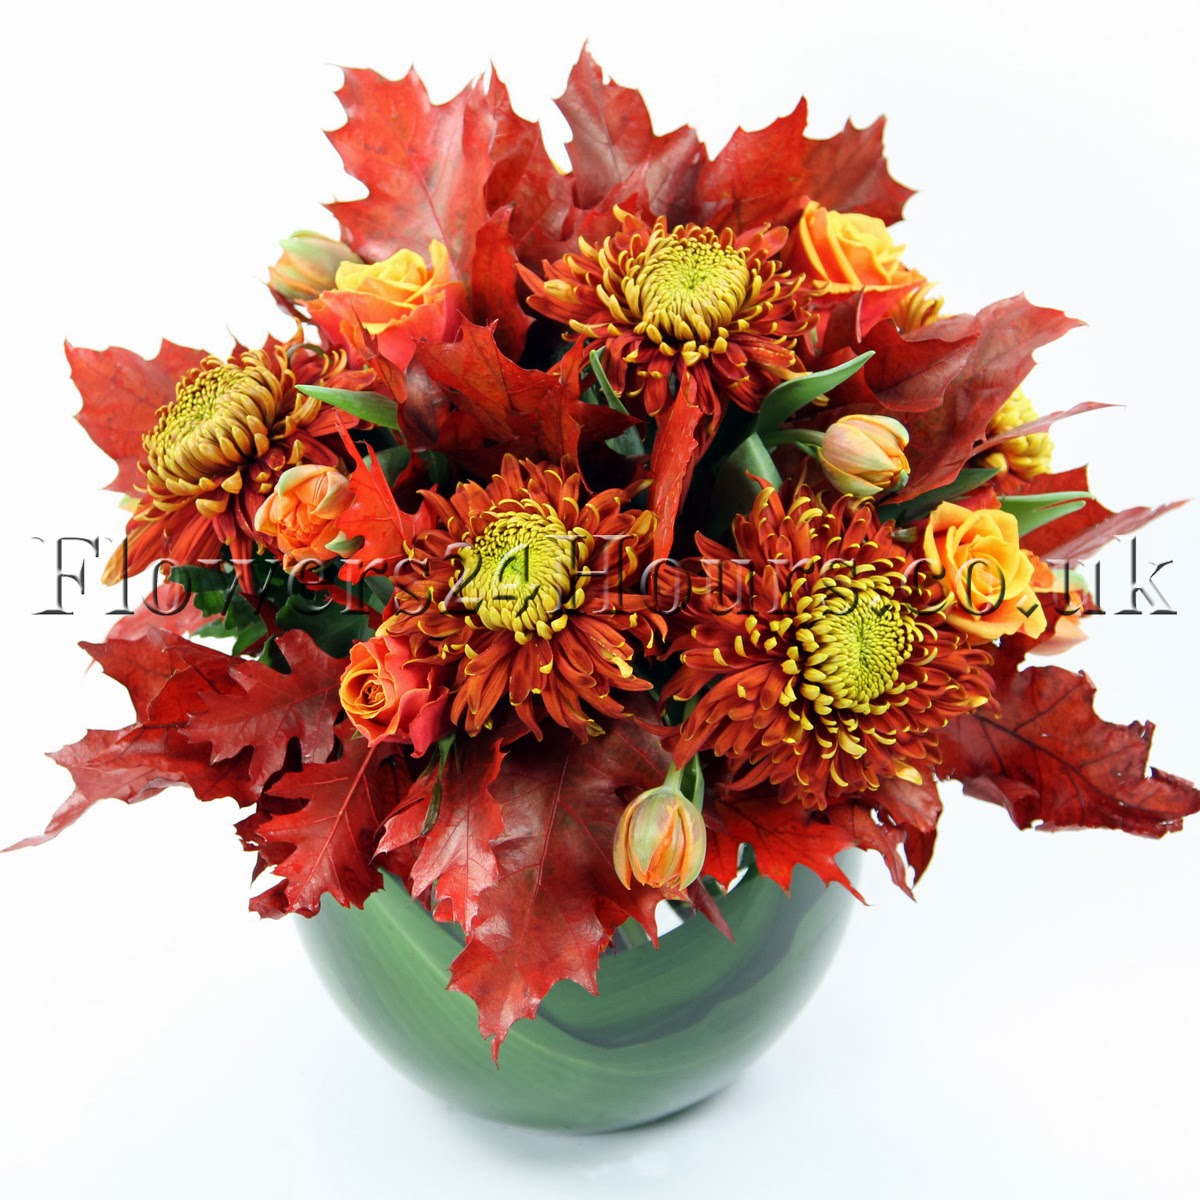 Rainyday flowers delivery london - gifts for men and flowers for men by London florists